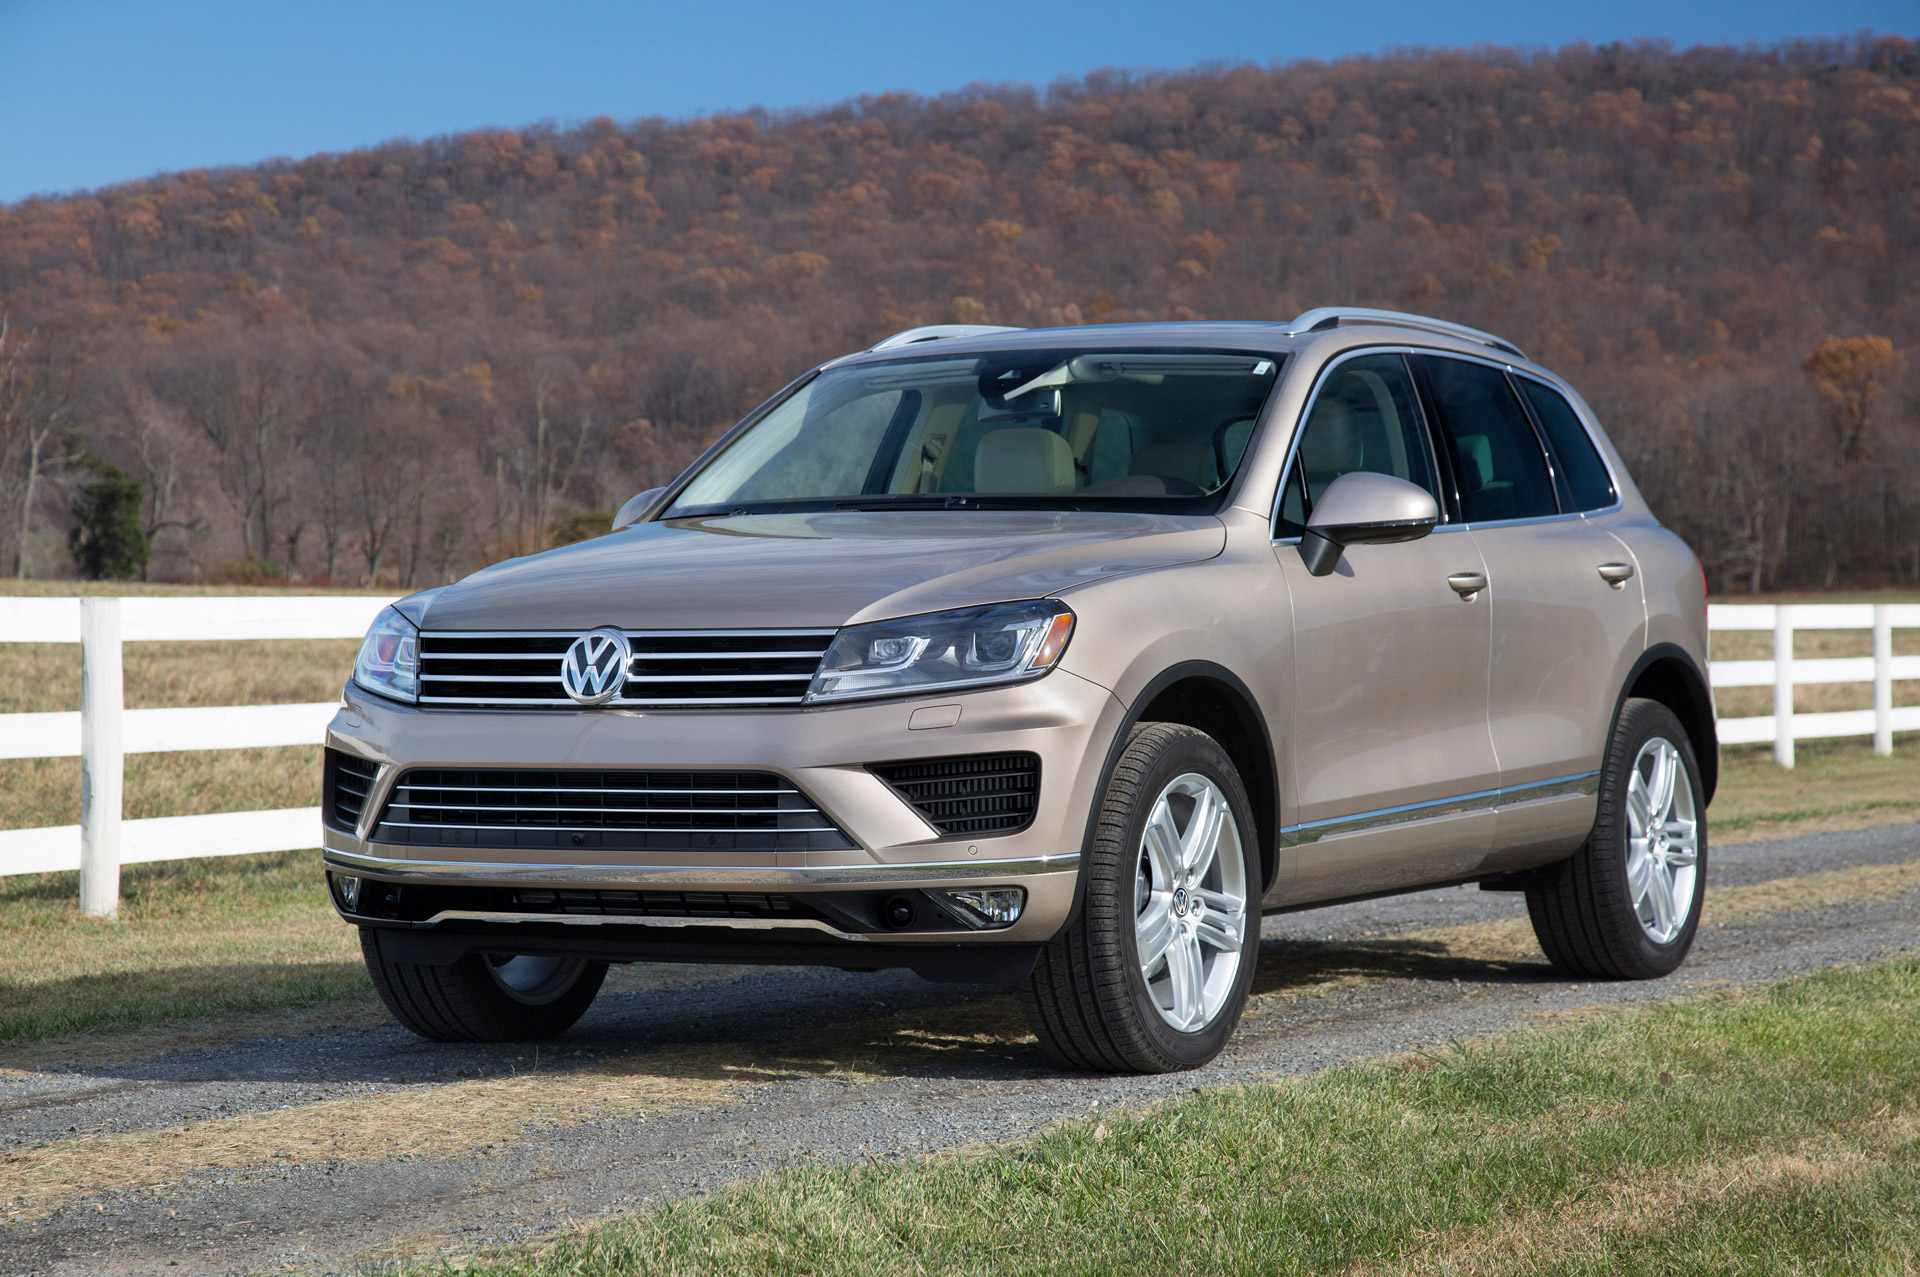 2016 Volkswagen Touareg Vw Review Ratings Specs